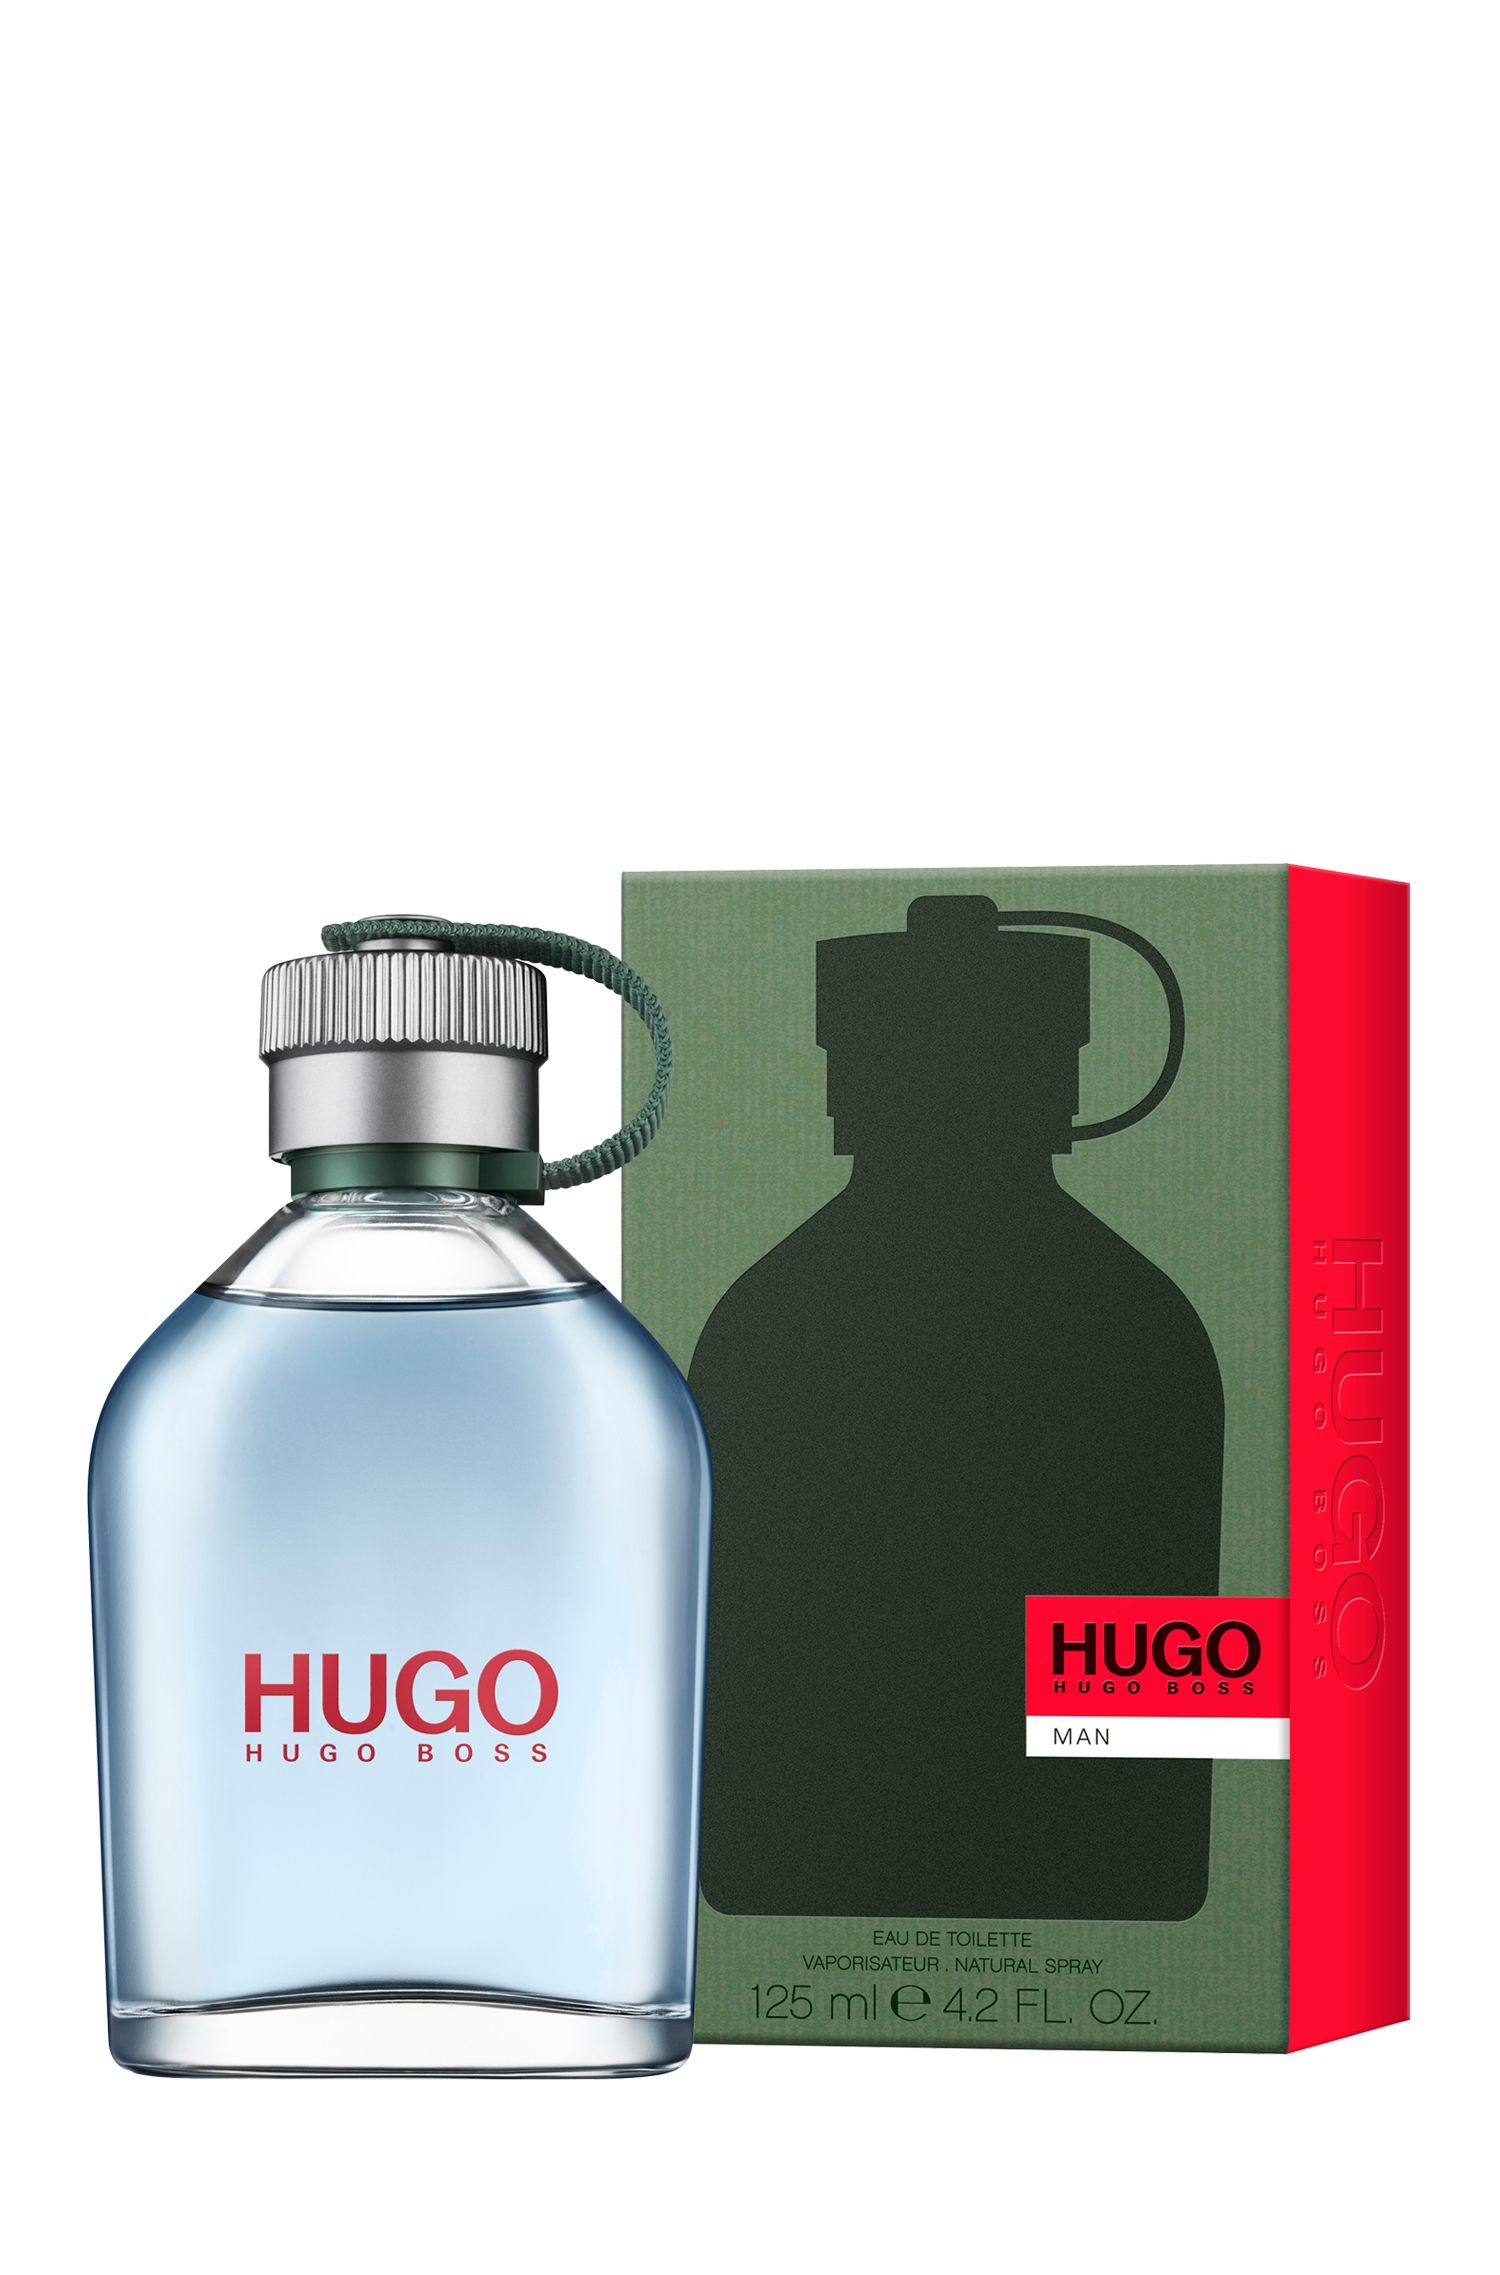 Eau de Toilette HUGO Man, 125 ml